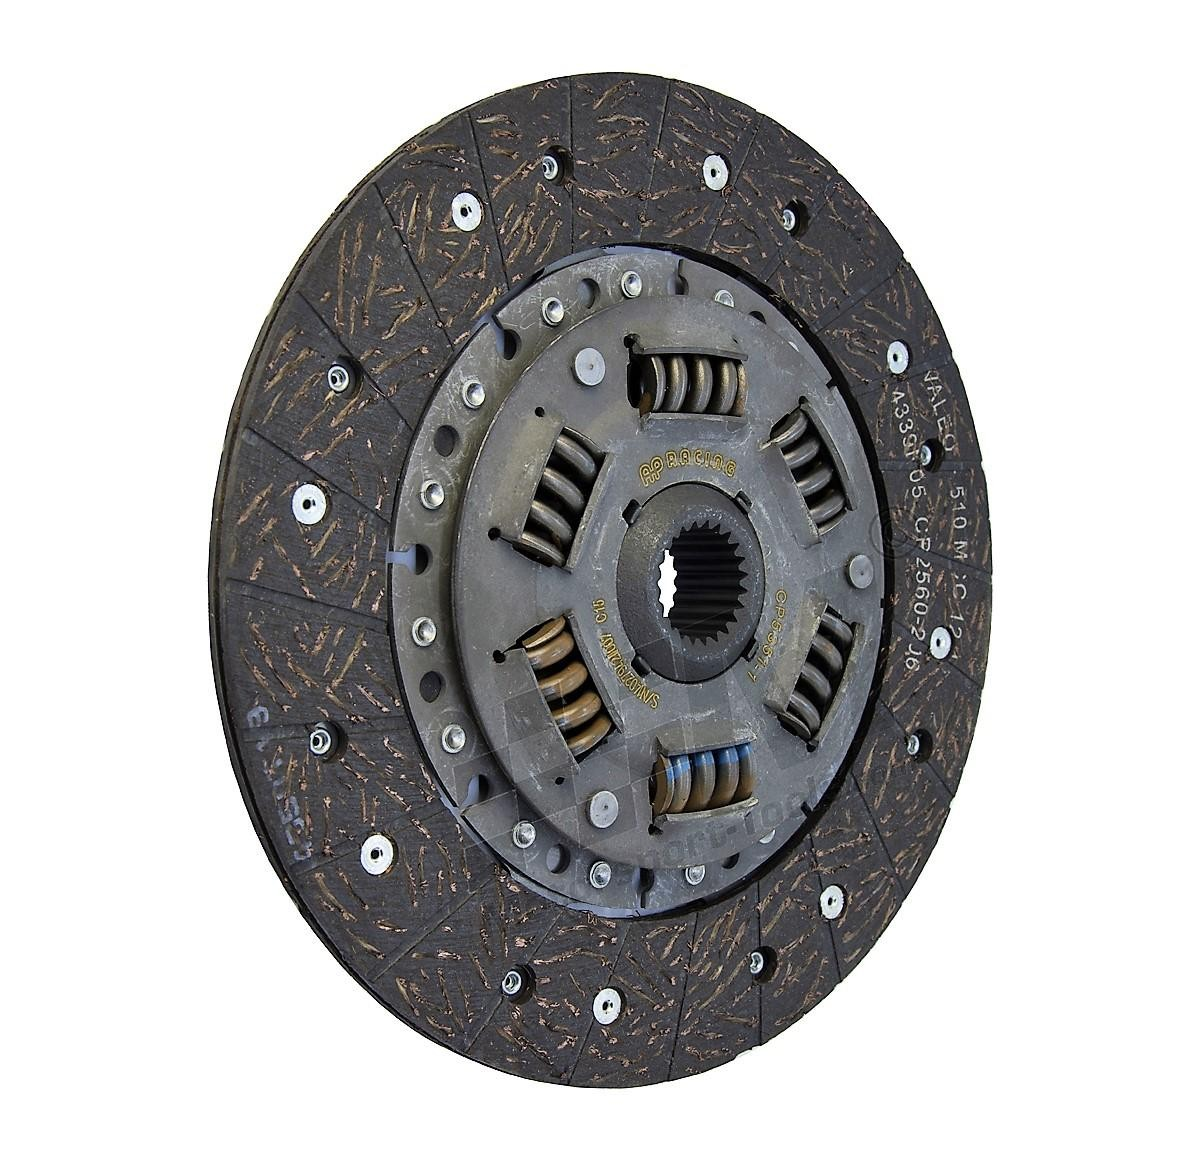 Engine Clutch Plate : Ap racing competition clutch drive plate escort mk pinto